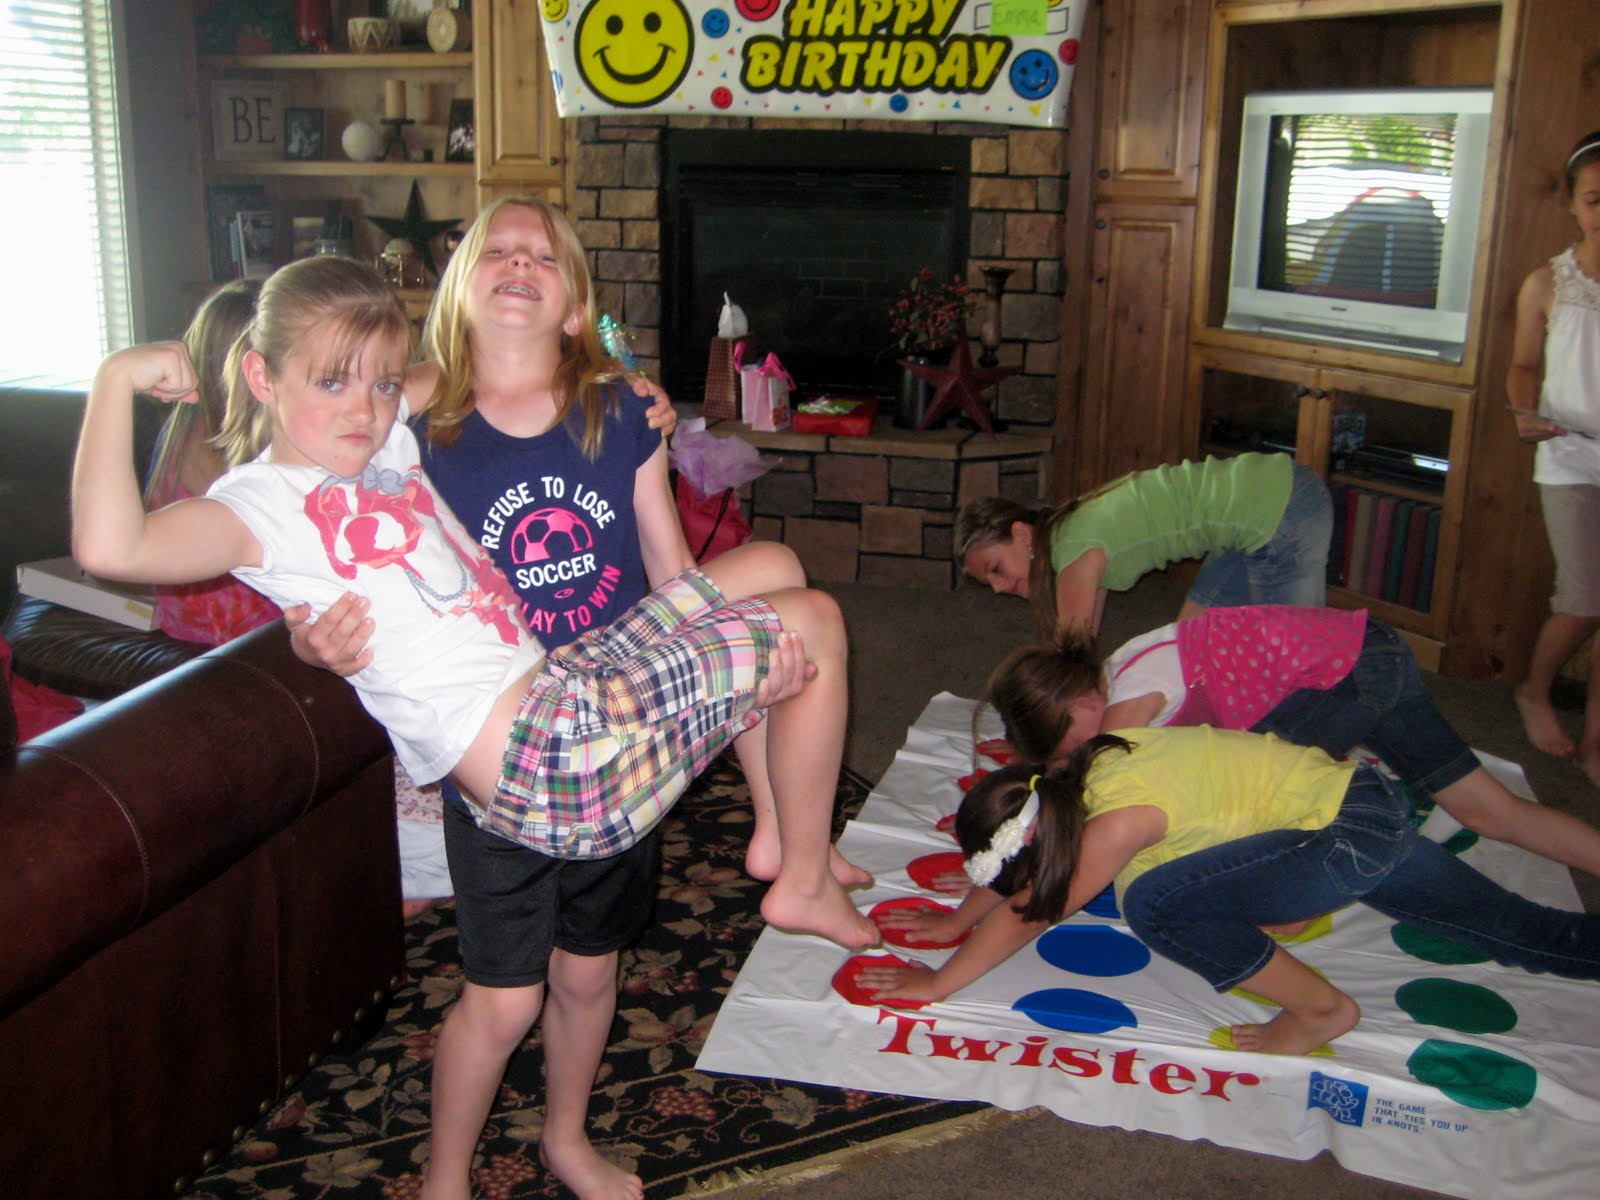 Little girls playing twister are